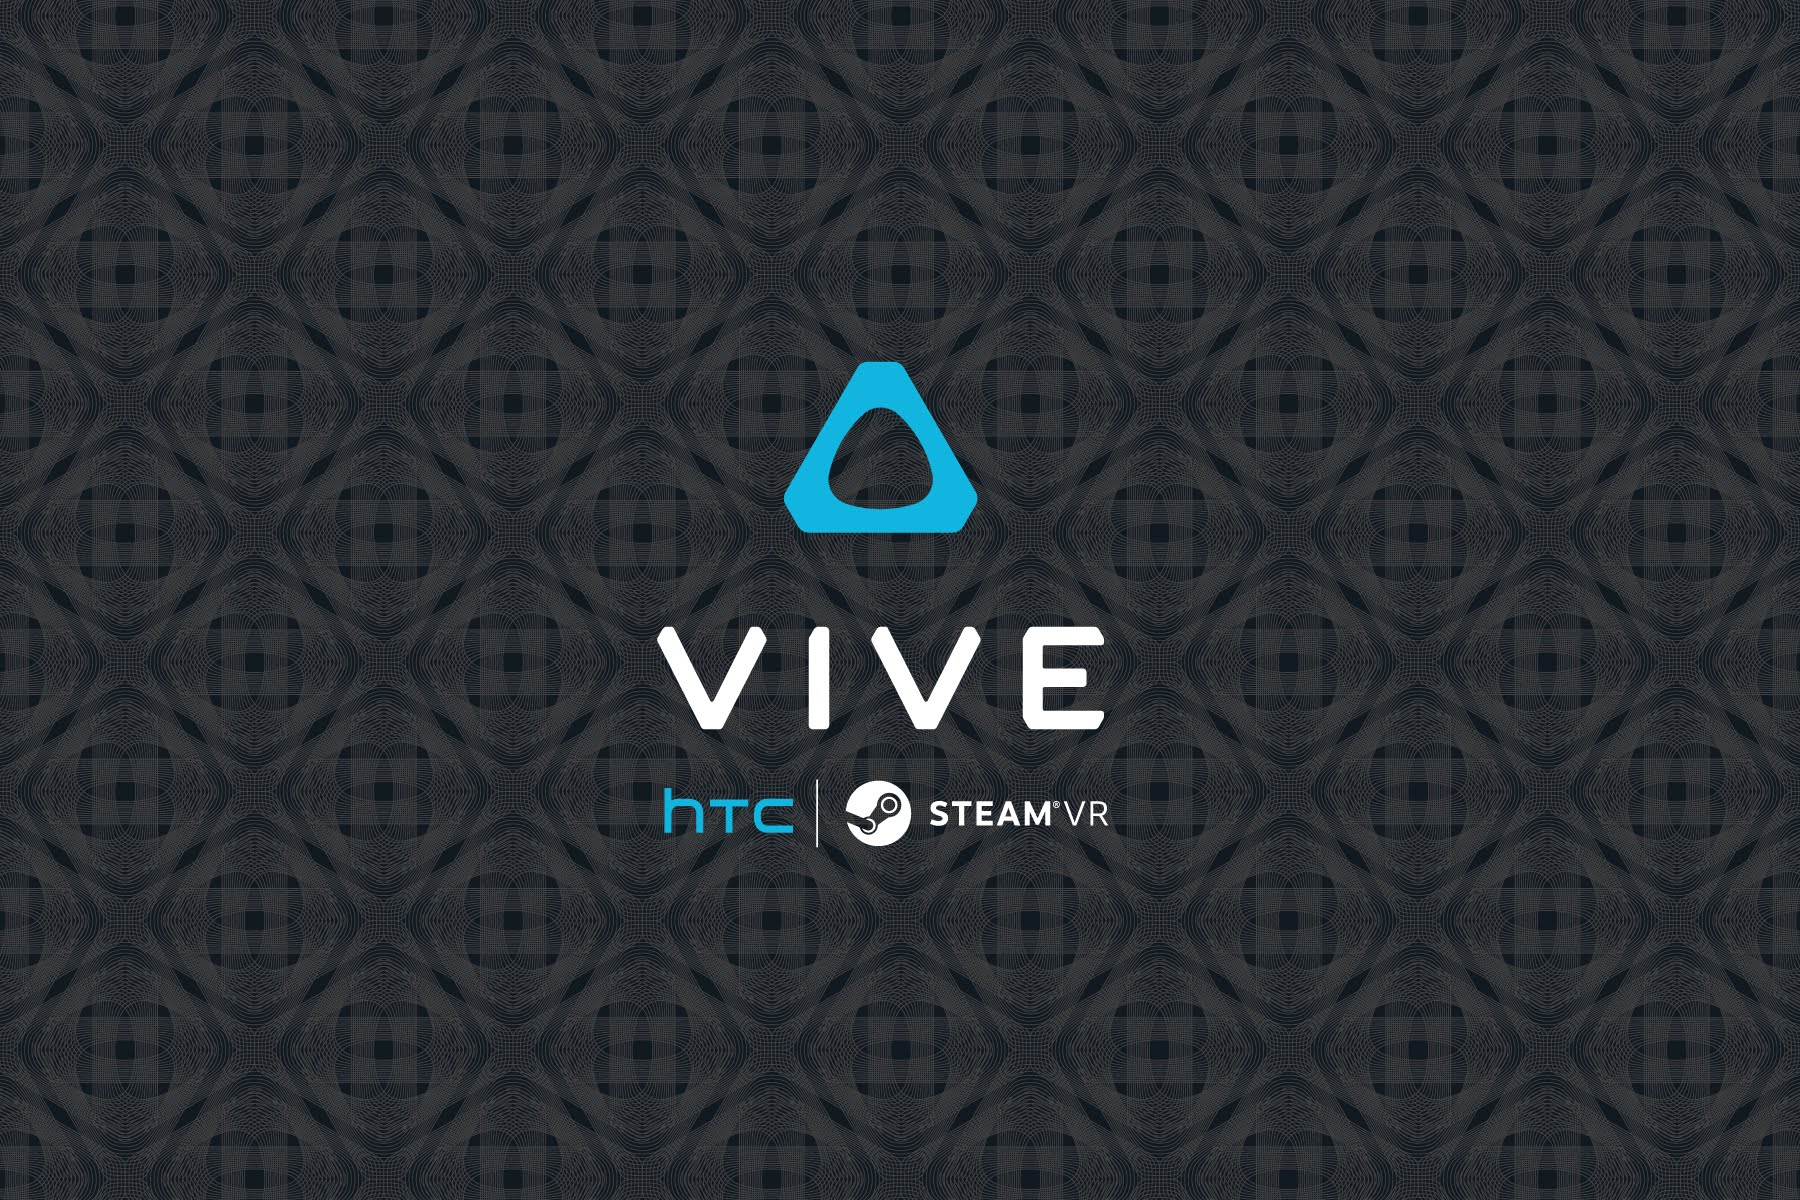 HTC Vive Wallpaper 1800x1200